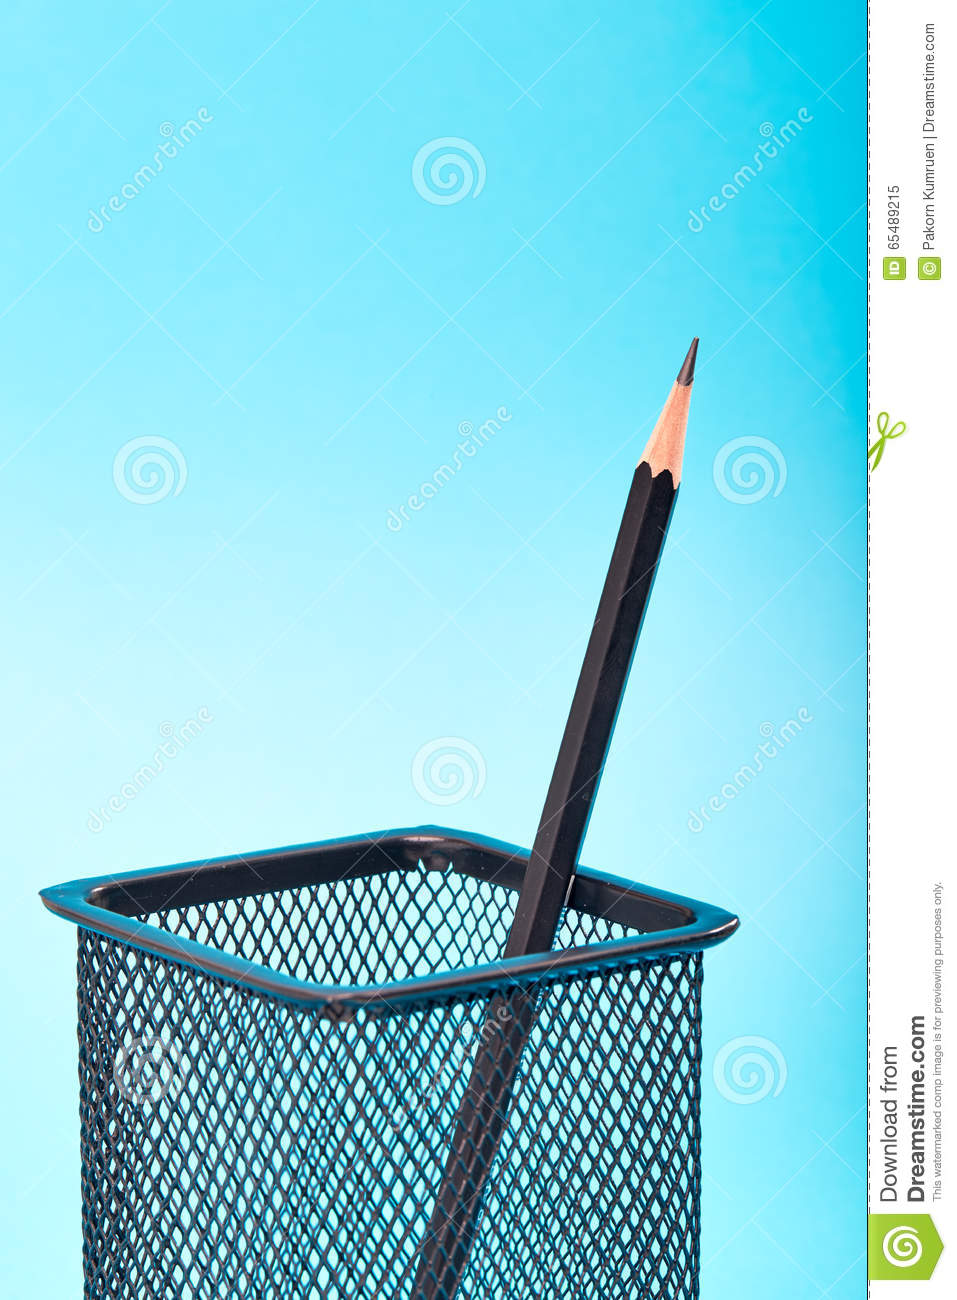 One pencil in a wire mesh stock image. Image of holder - 65489215